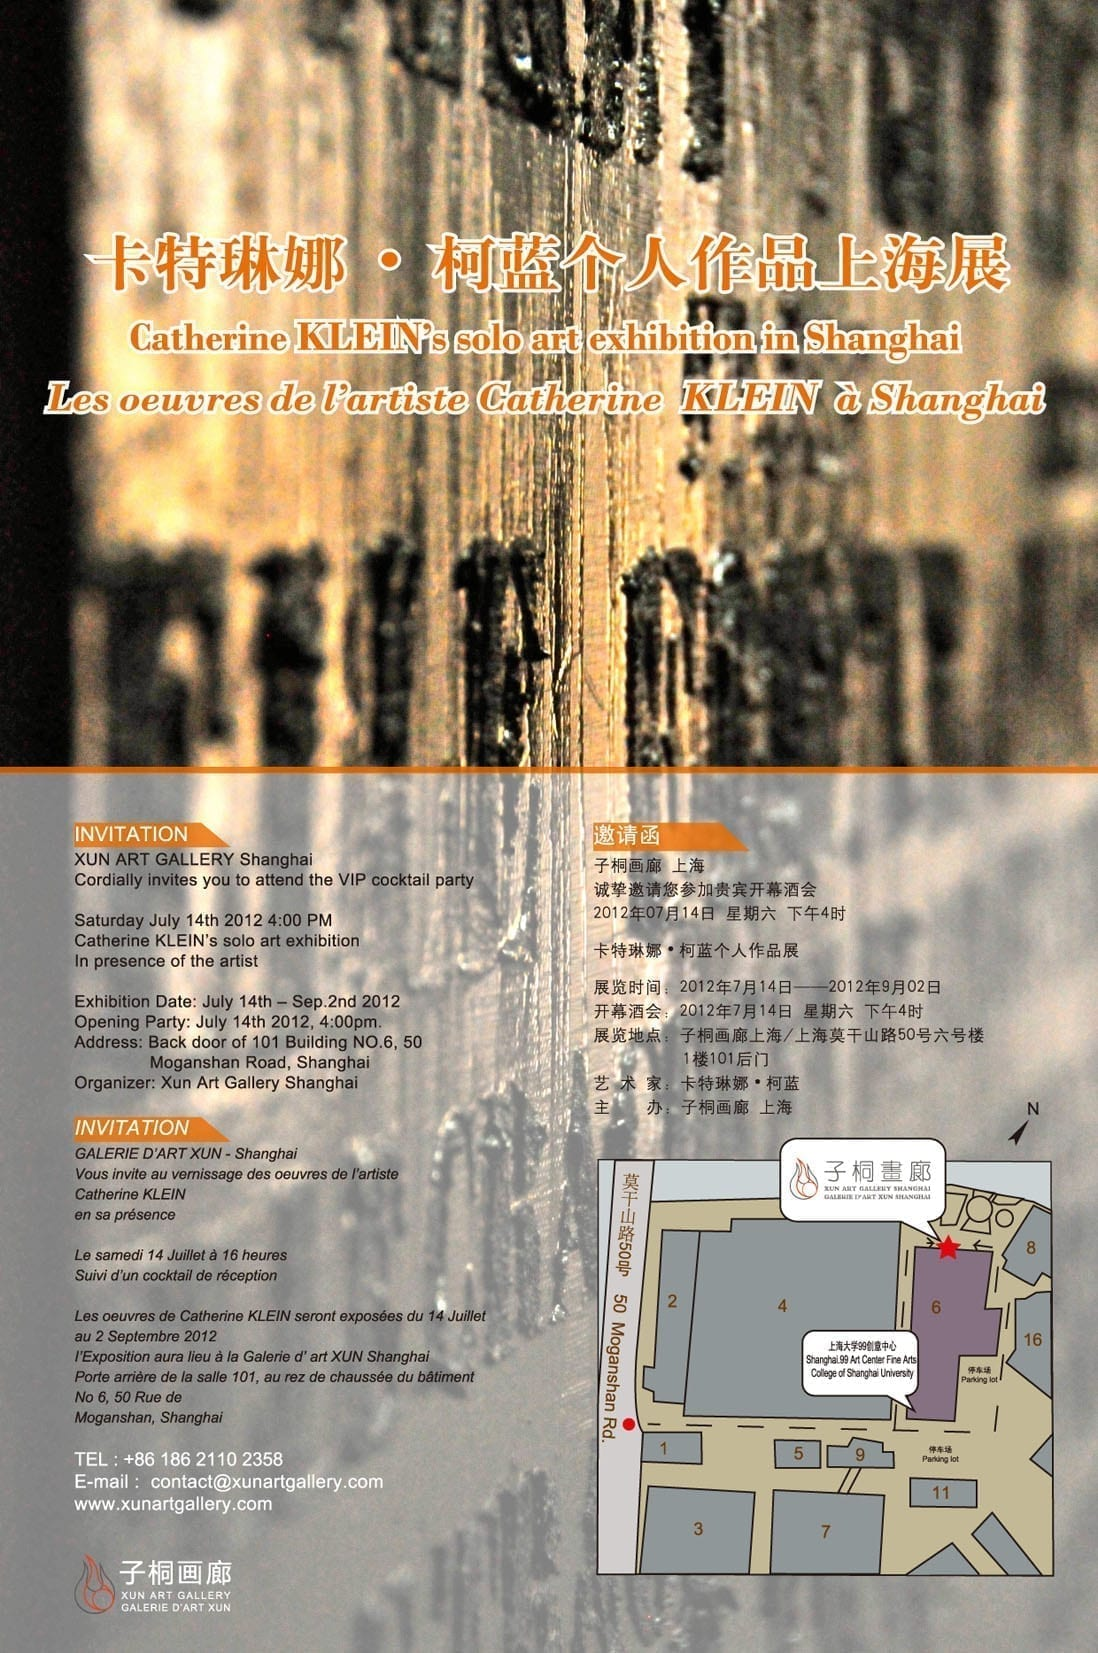 invitation of XUN Art gallery for Catherine Kleins solo art